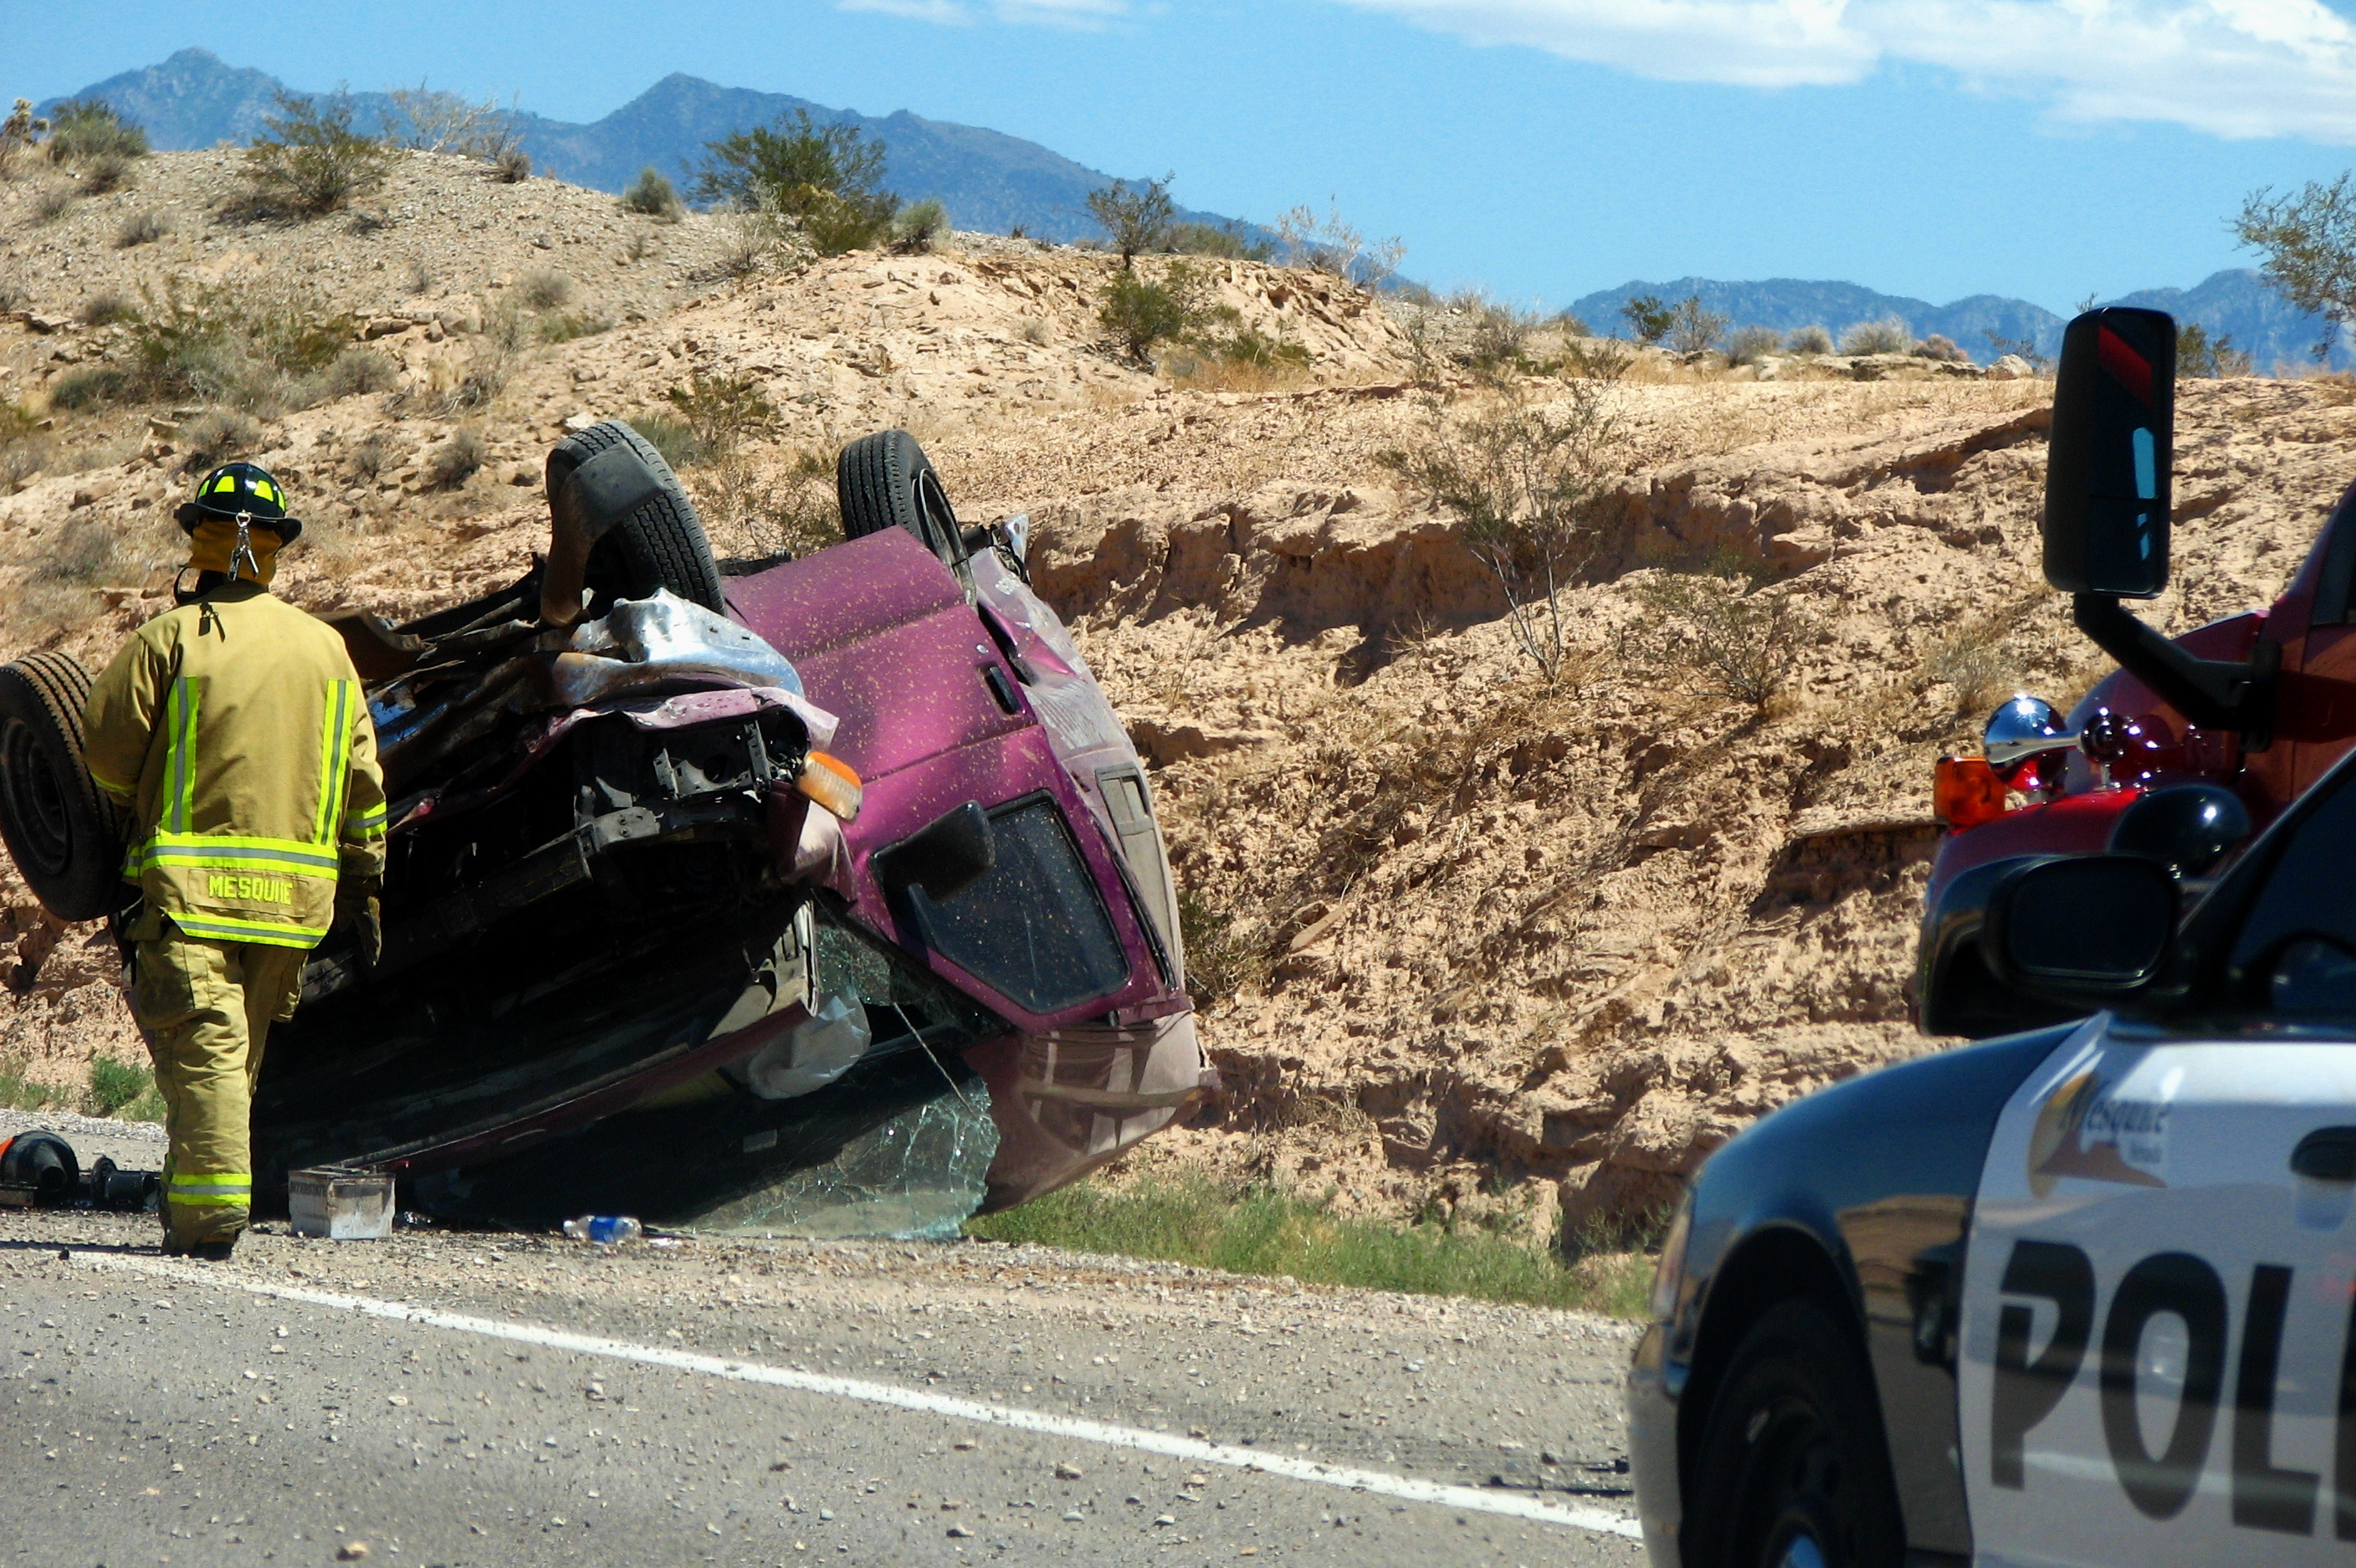 Crashes Account for 41% of Work-Related Accidental Deaths